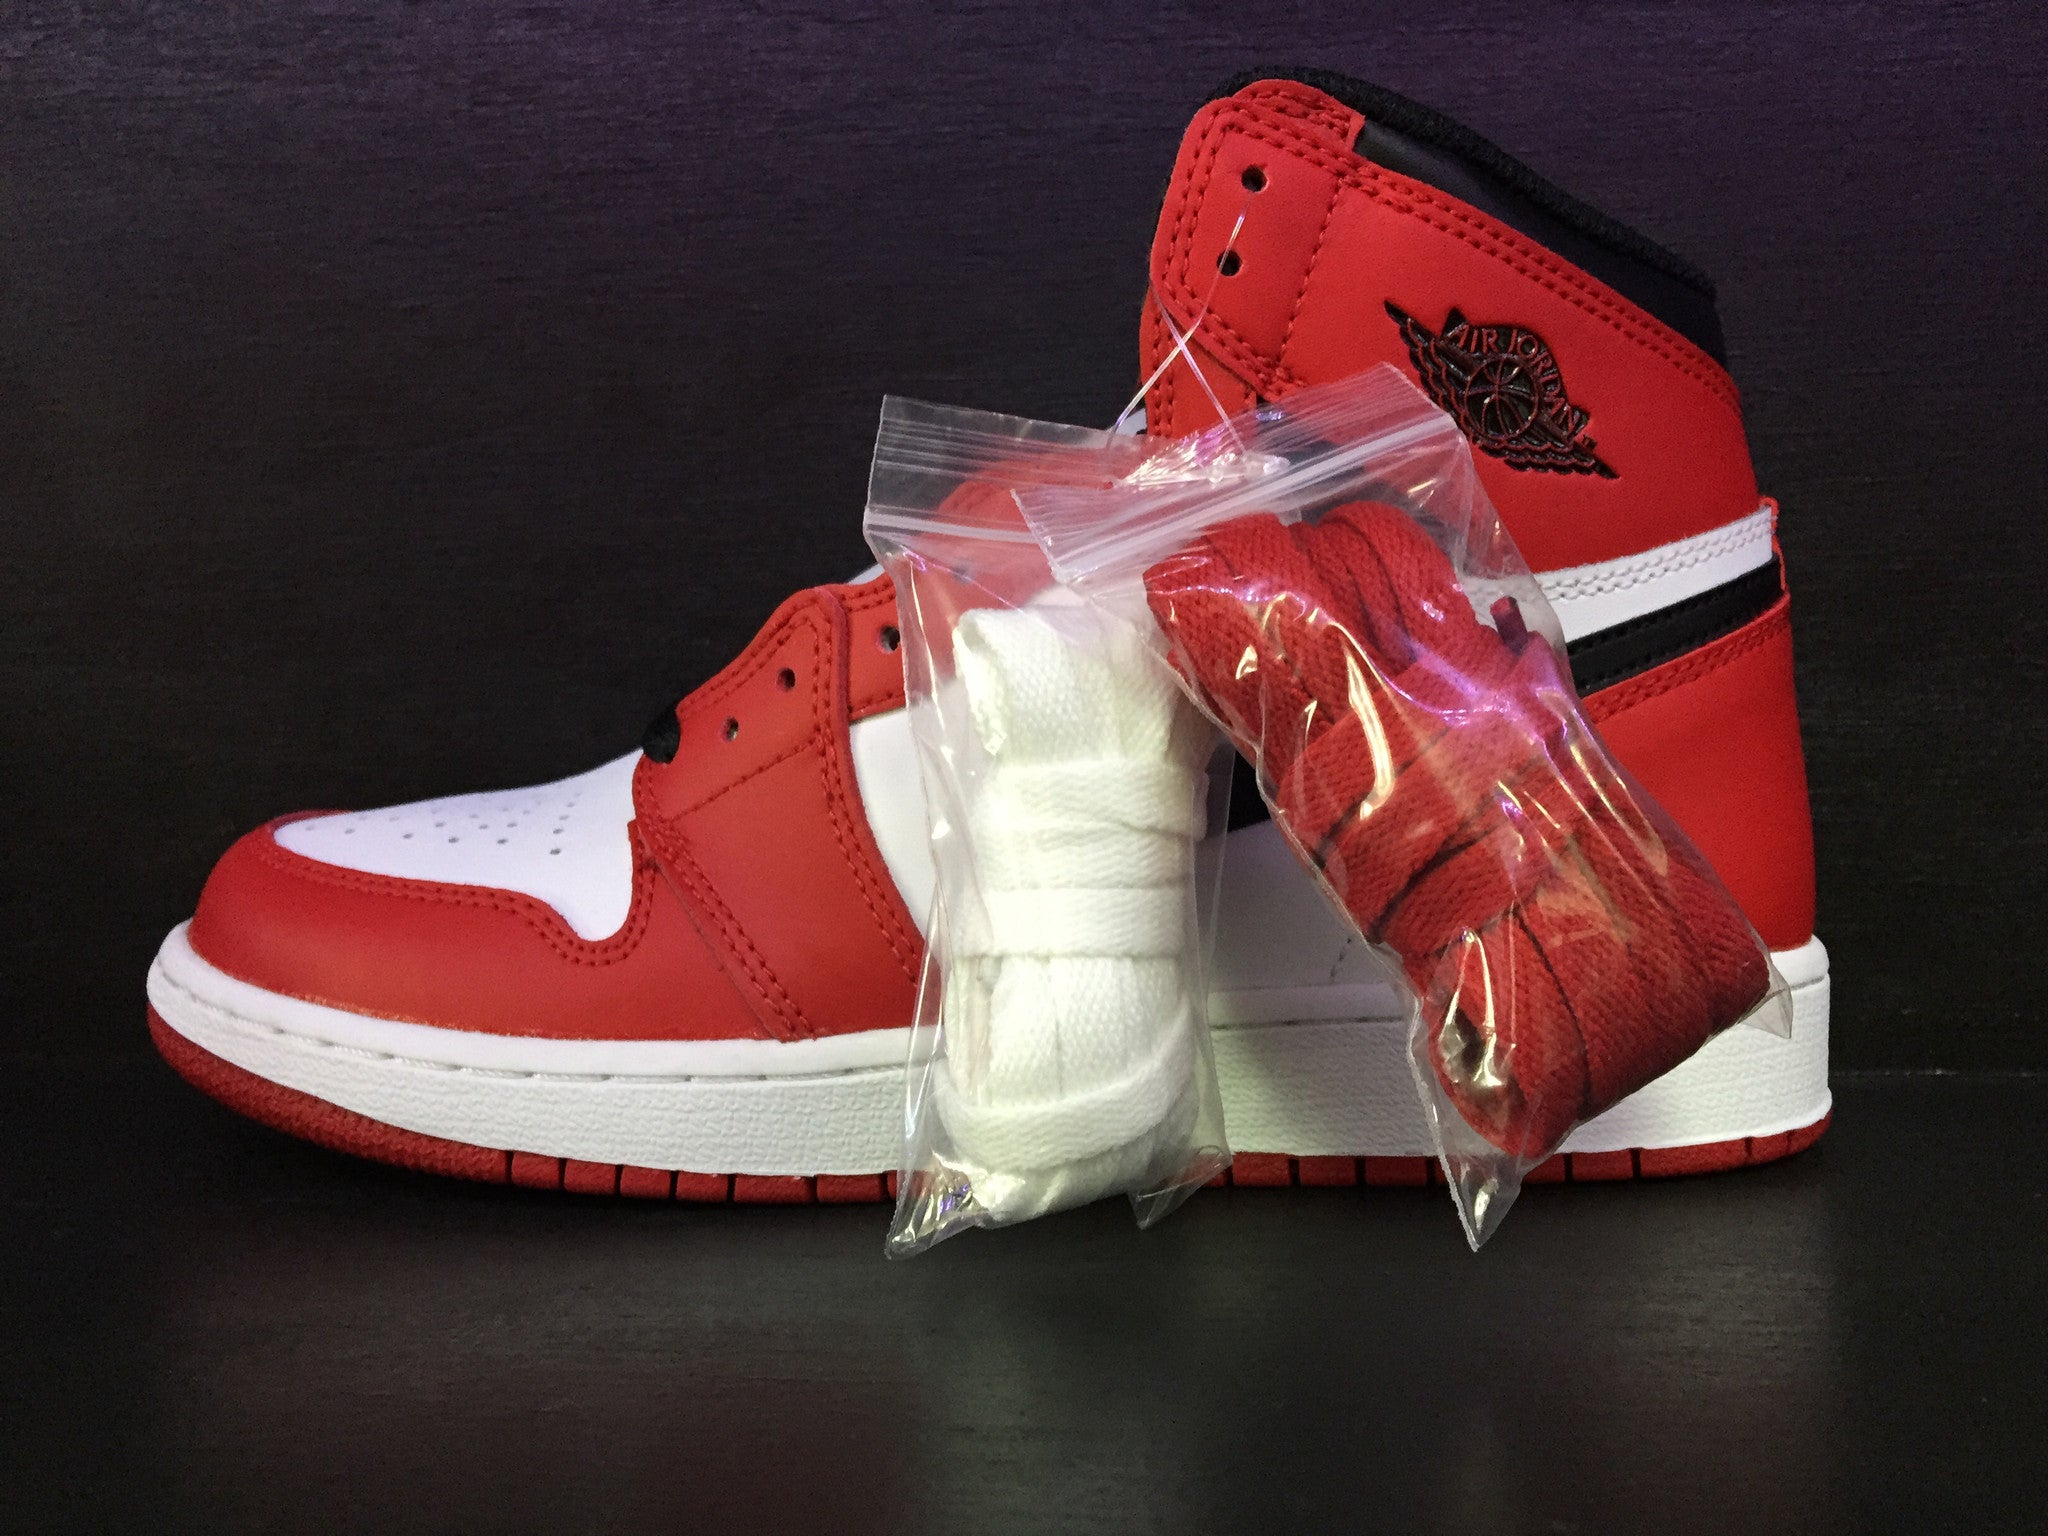 Air Jordan 1 Retro High OG 'Varsity Red' 'Chicago' GS Remastered